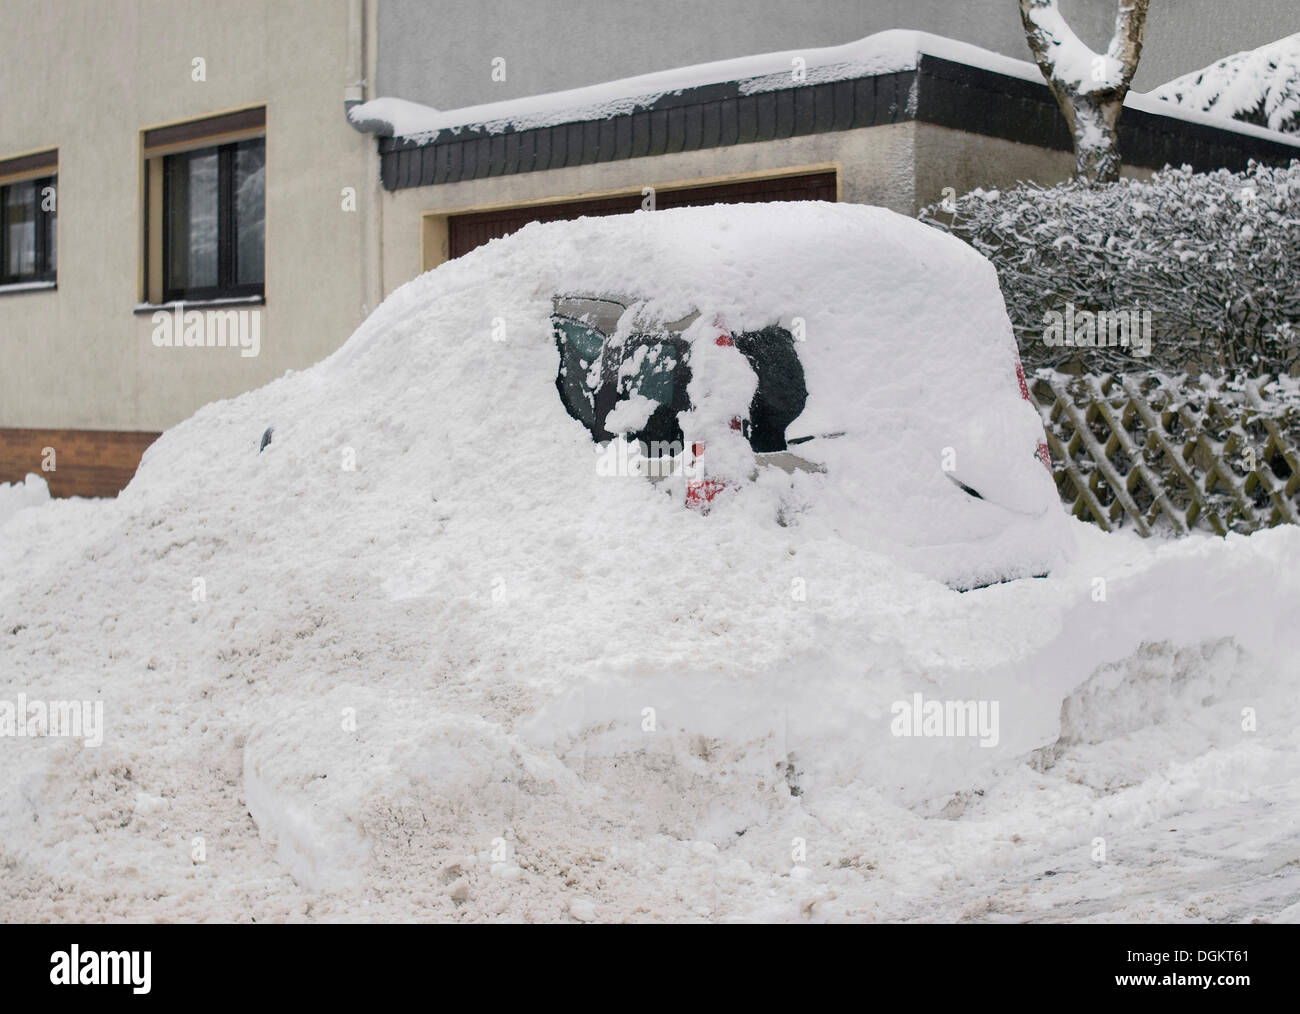 Snowed-in car at the roadside - Stock Image